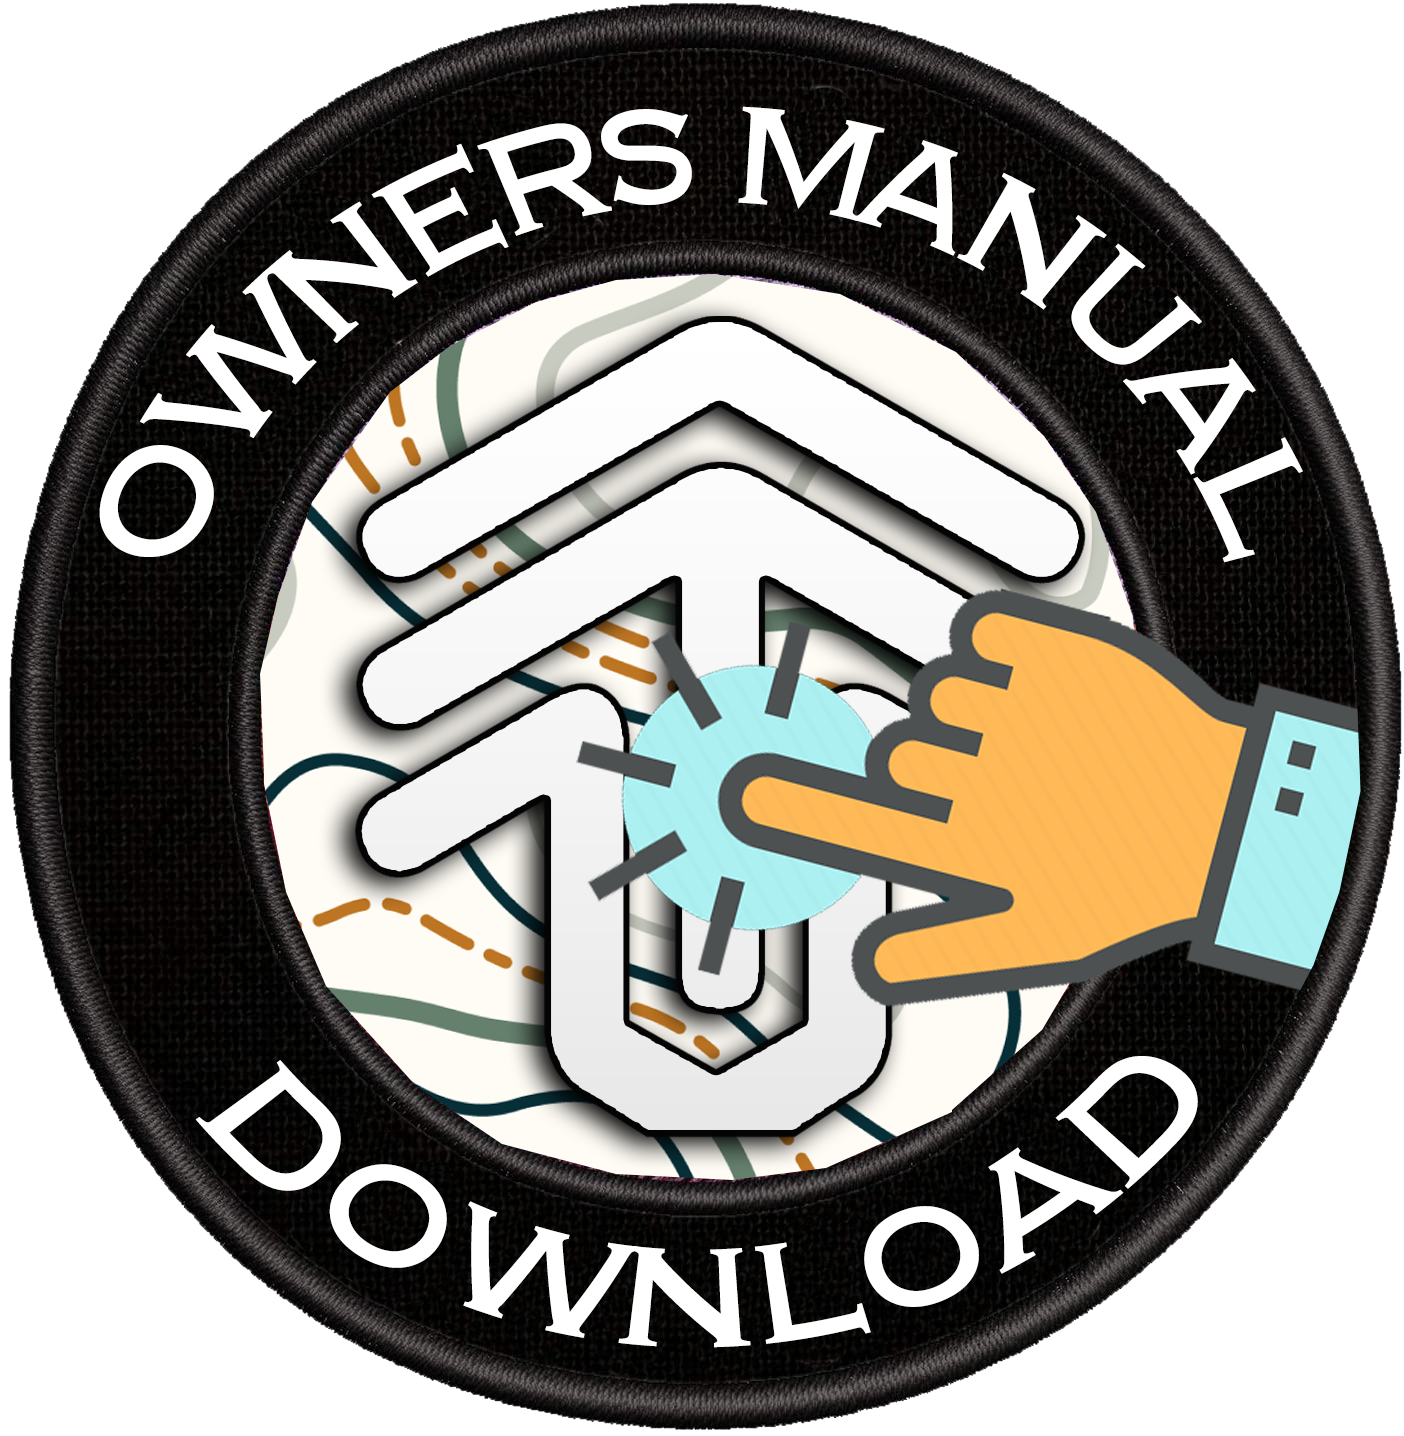 Owner's manual icon